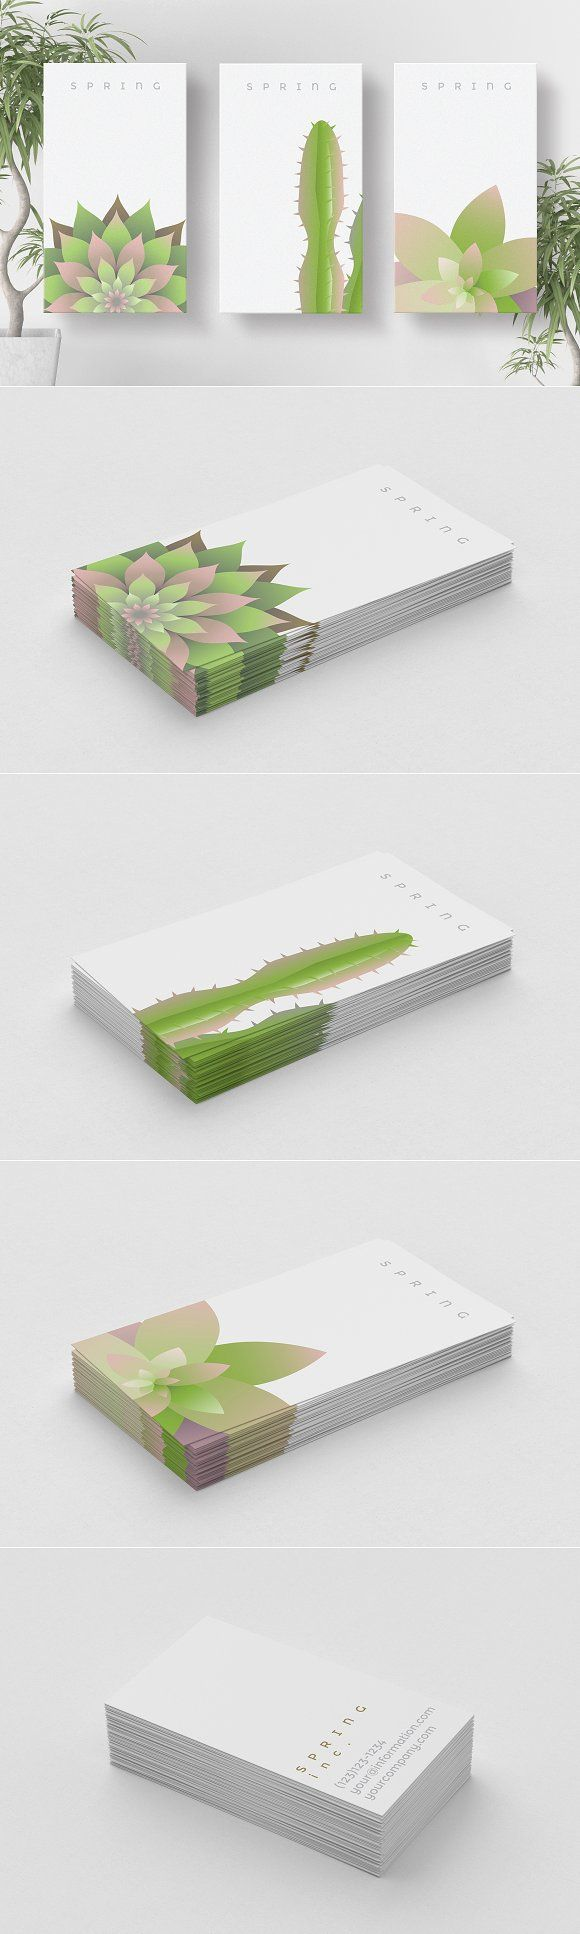 Spring business card templates by Polar Vectors on @creativemarket